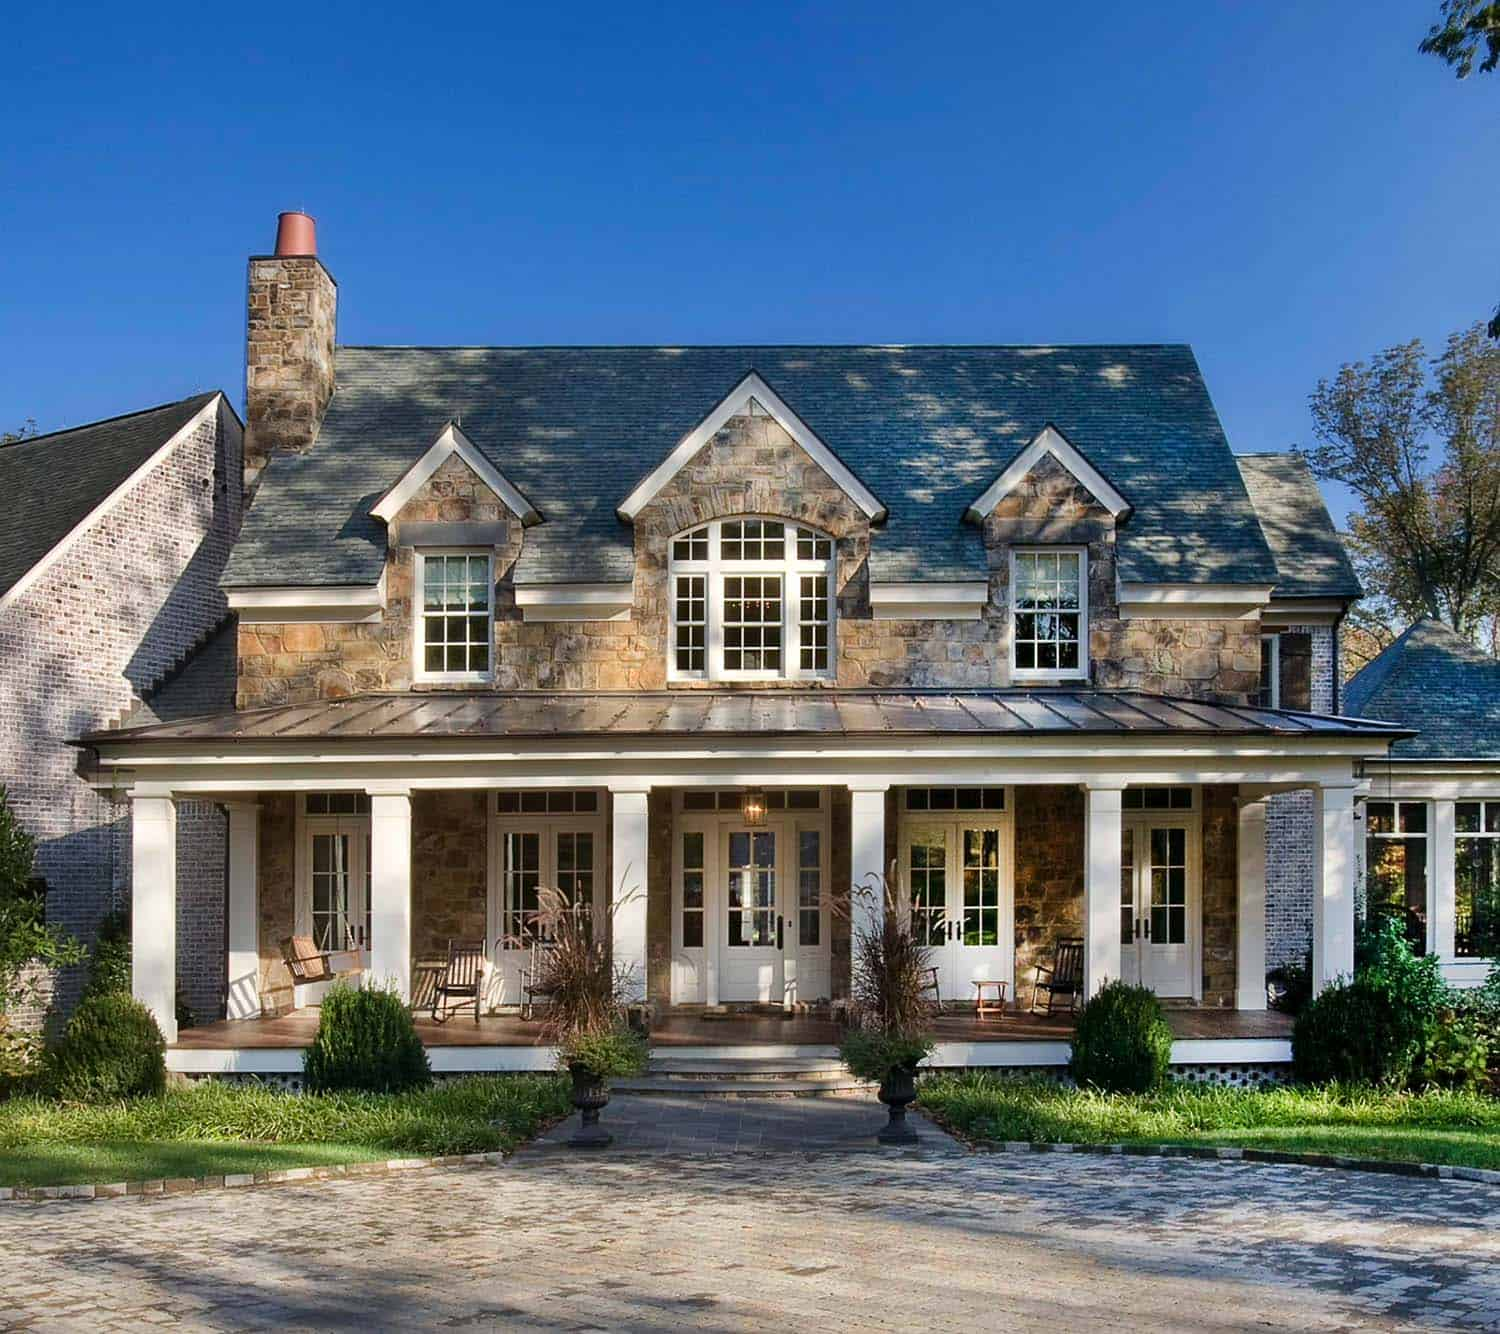 Apartments In Nashville Tn Under 1000: Gorgeous Stone Residence In Nashville Offers A Timeless